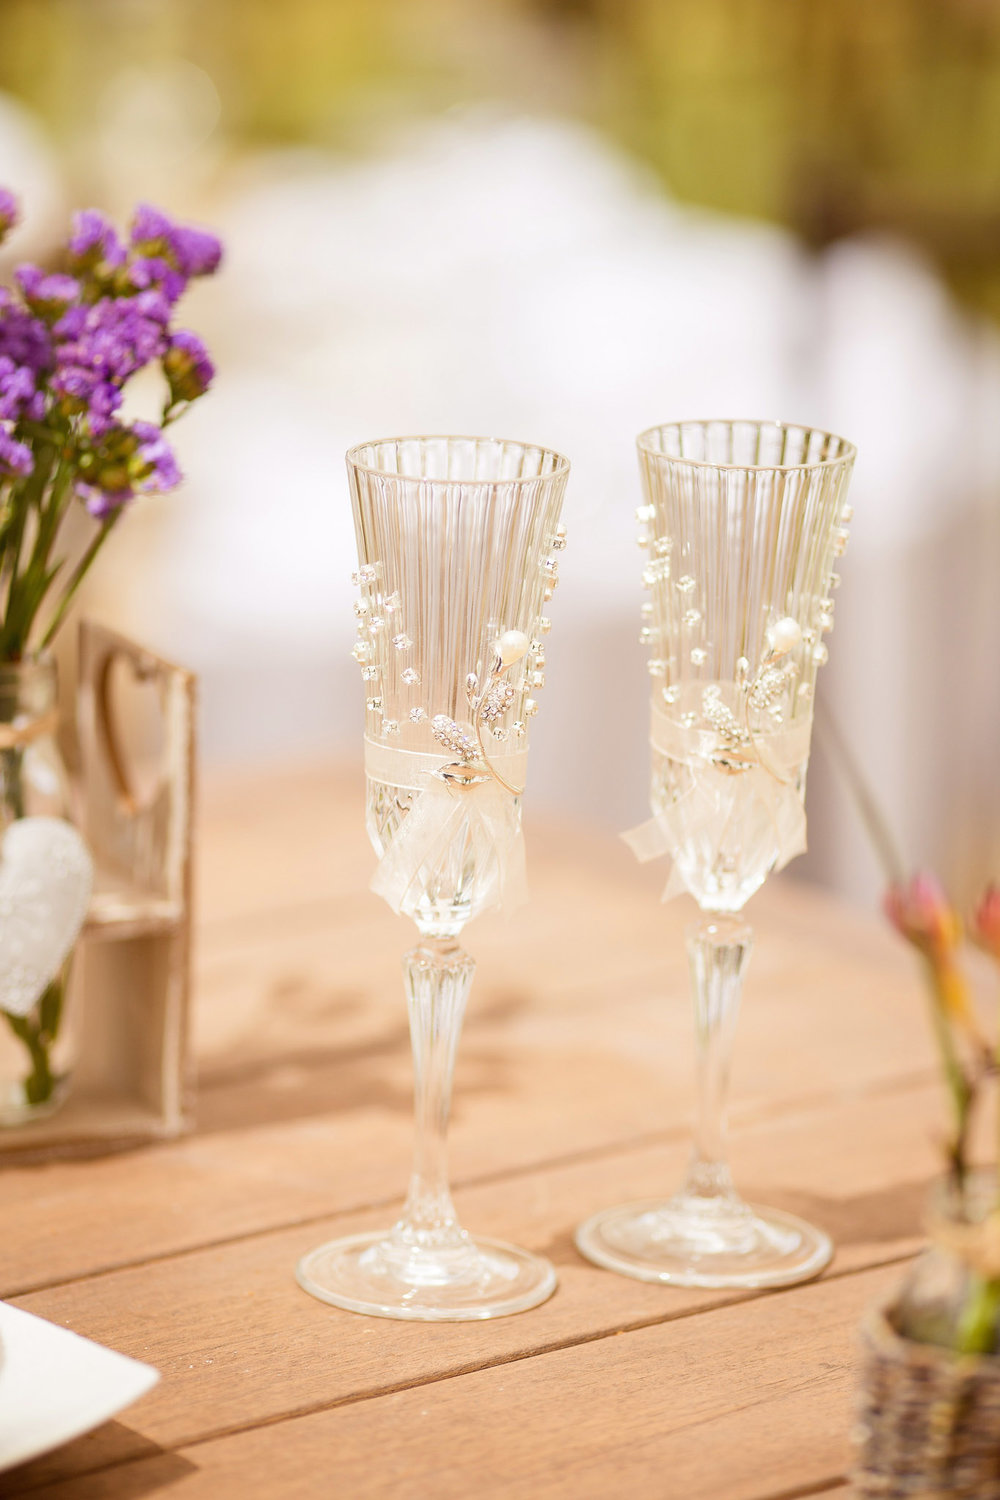 Wedding-Travellers-Destination-Wedding-Peru-Cusco-Hacienda-Sarapampa-Sacred-Valley-champagne-glasses-flutes